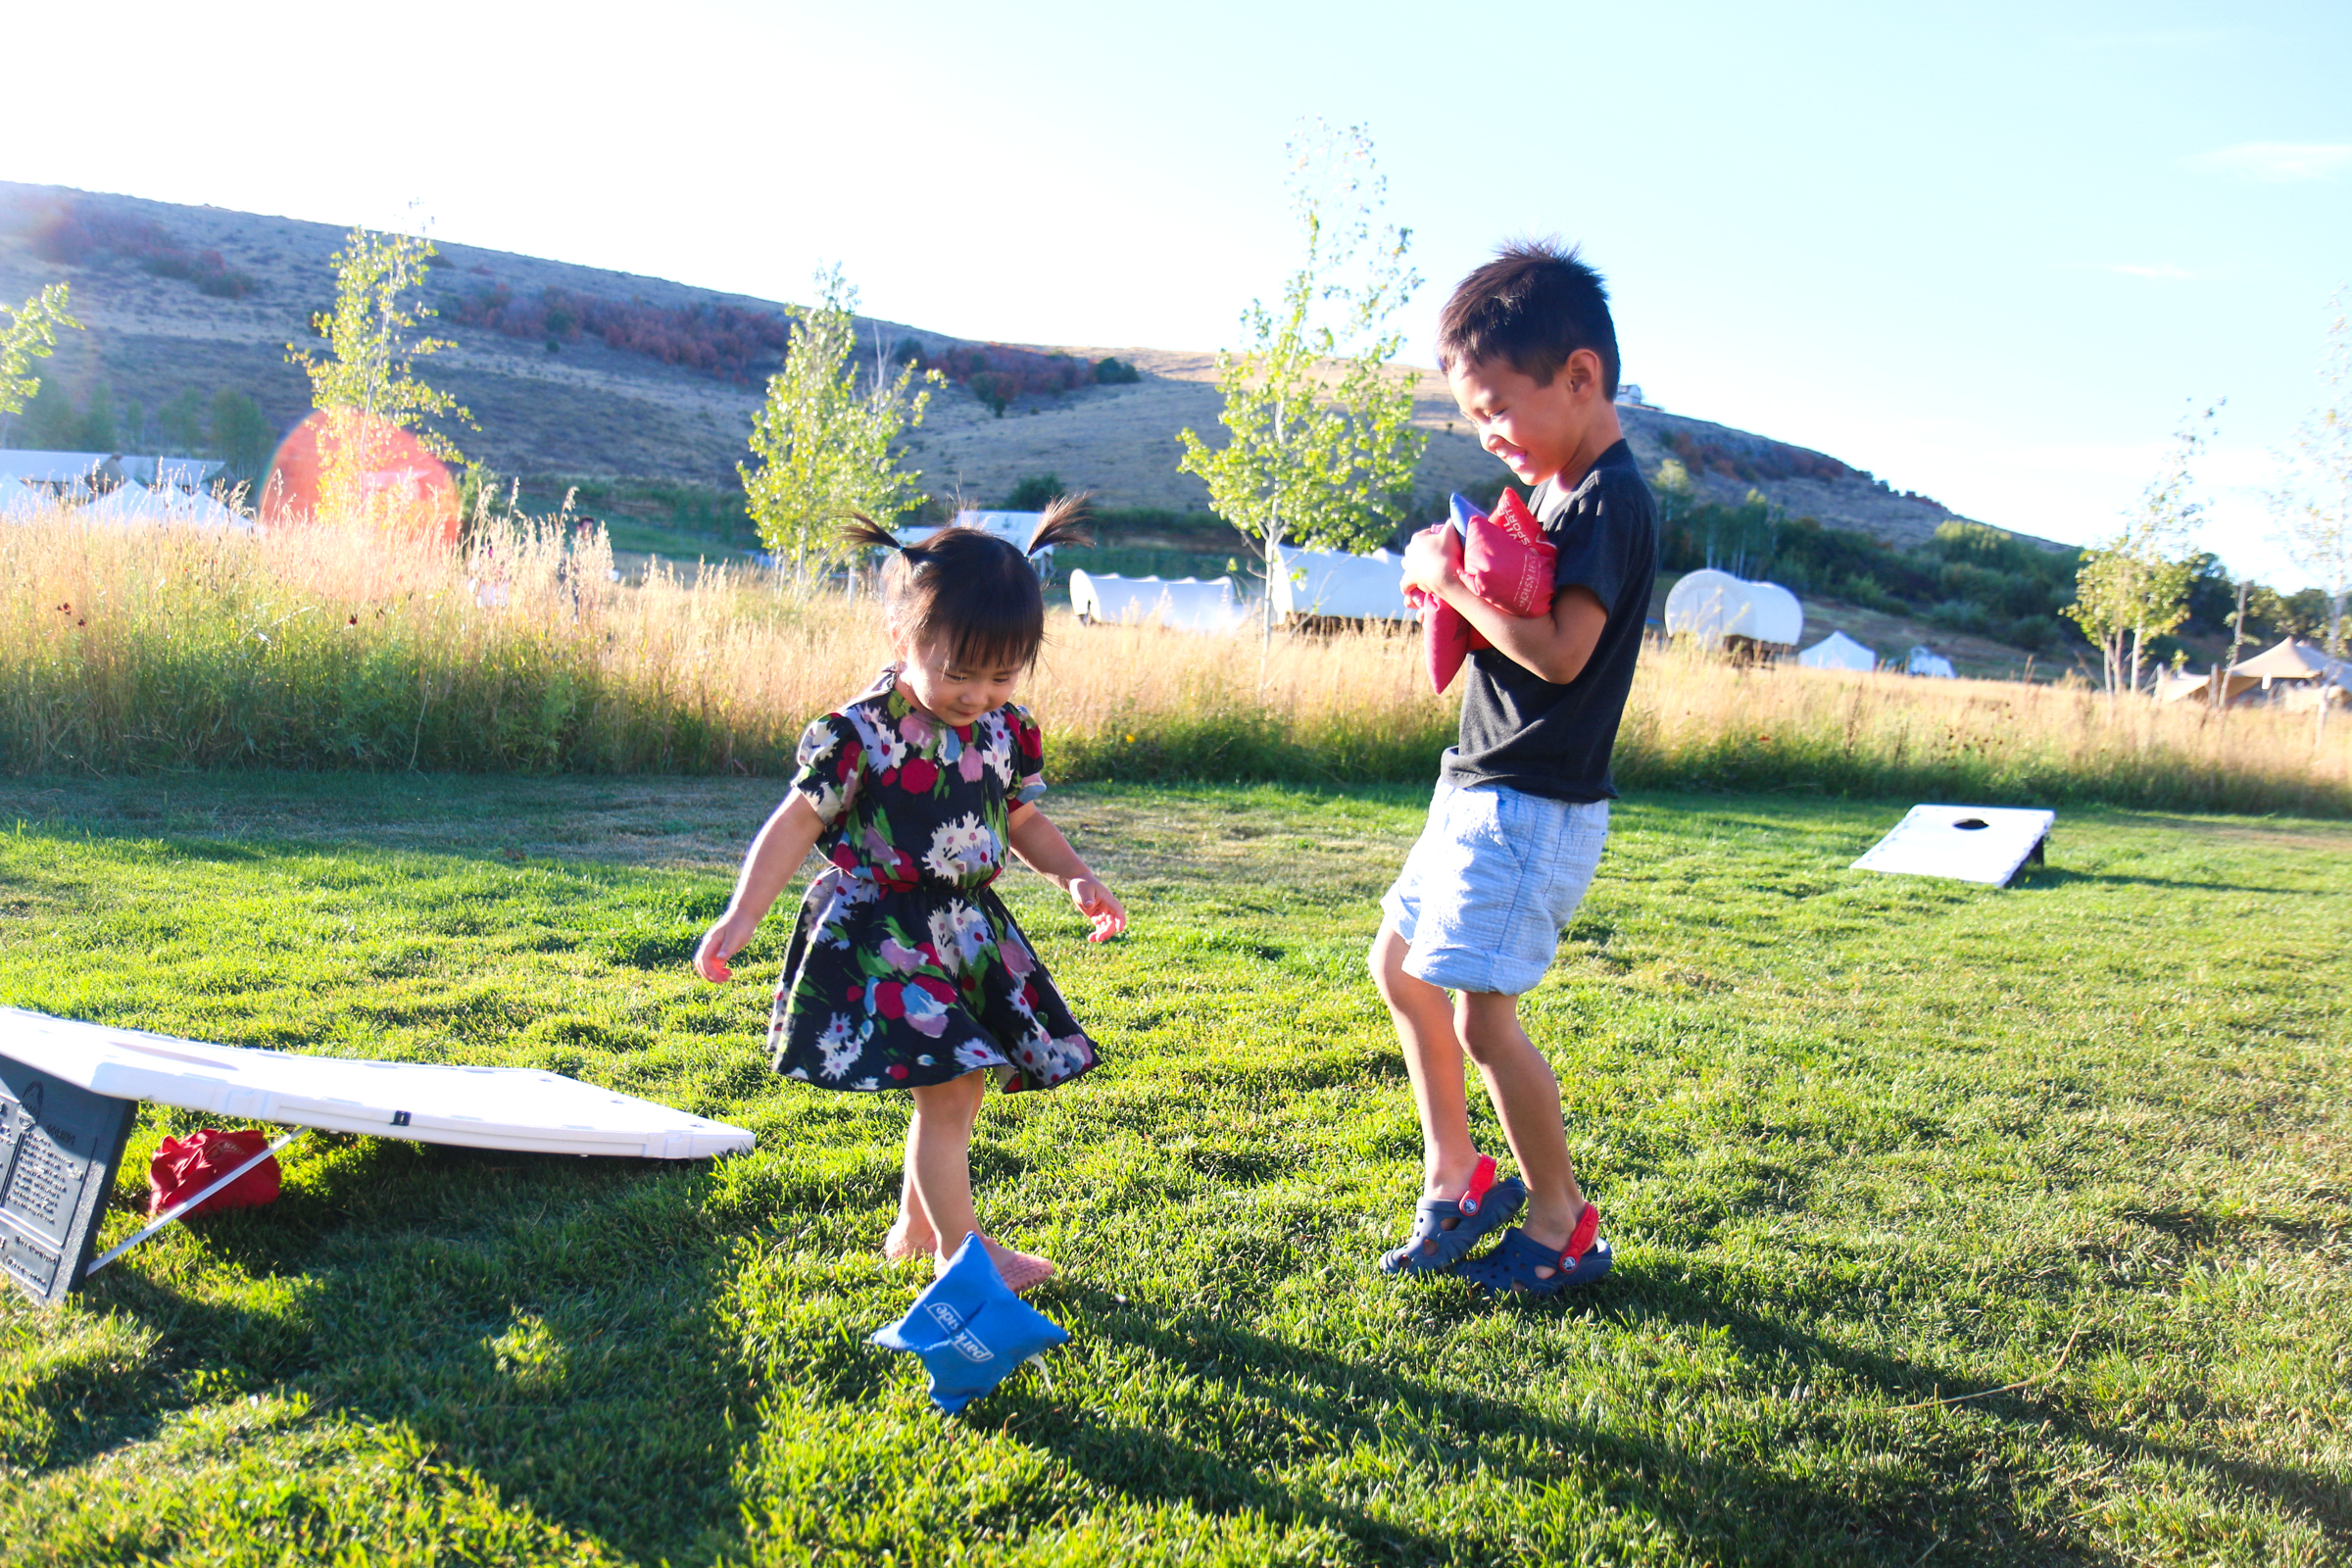 Things to do for kids at Conestoga Ranch